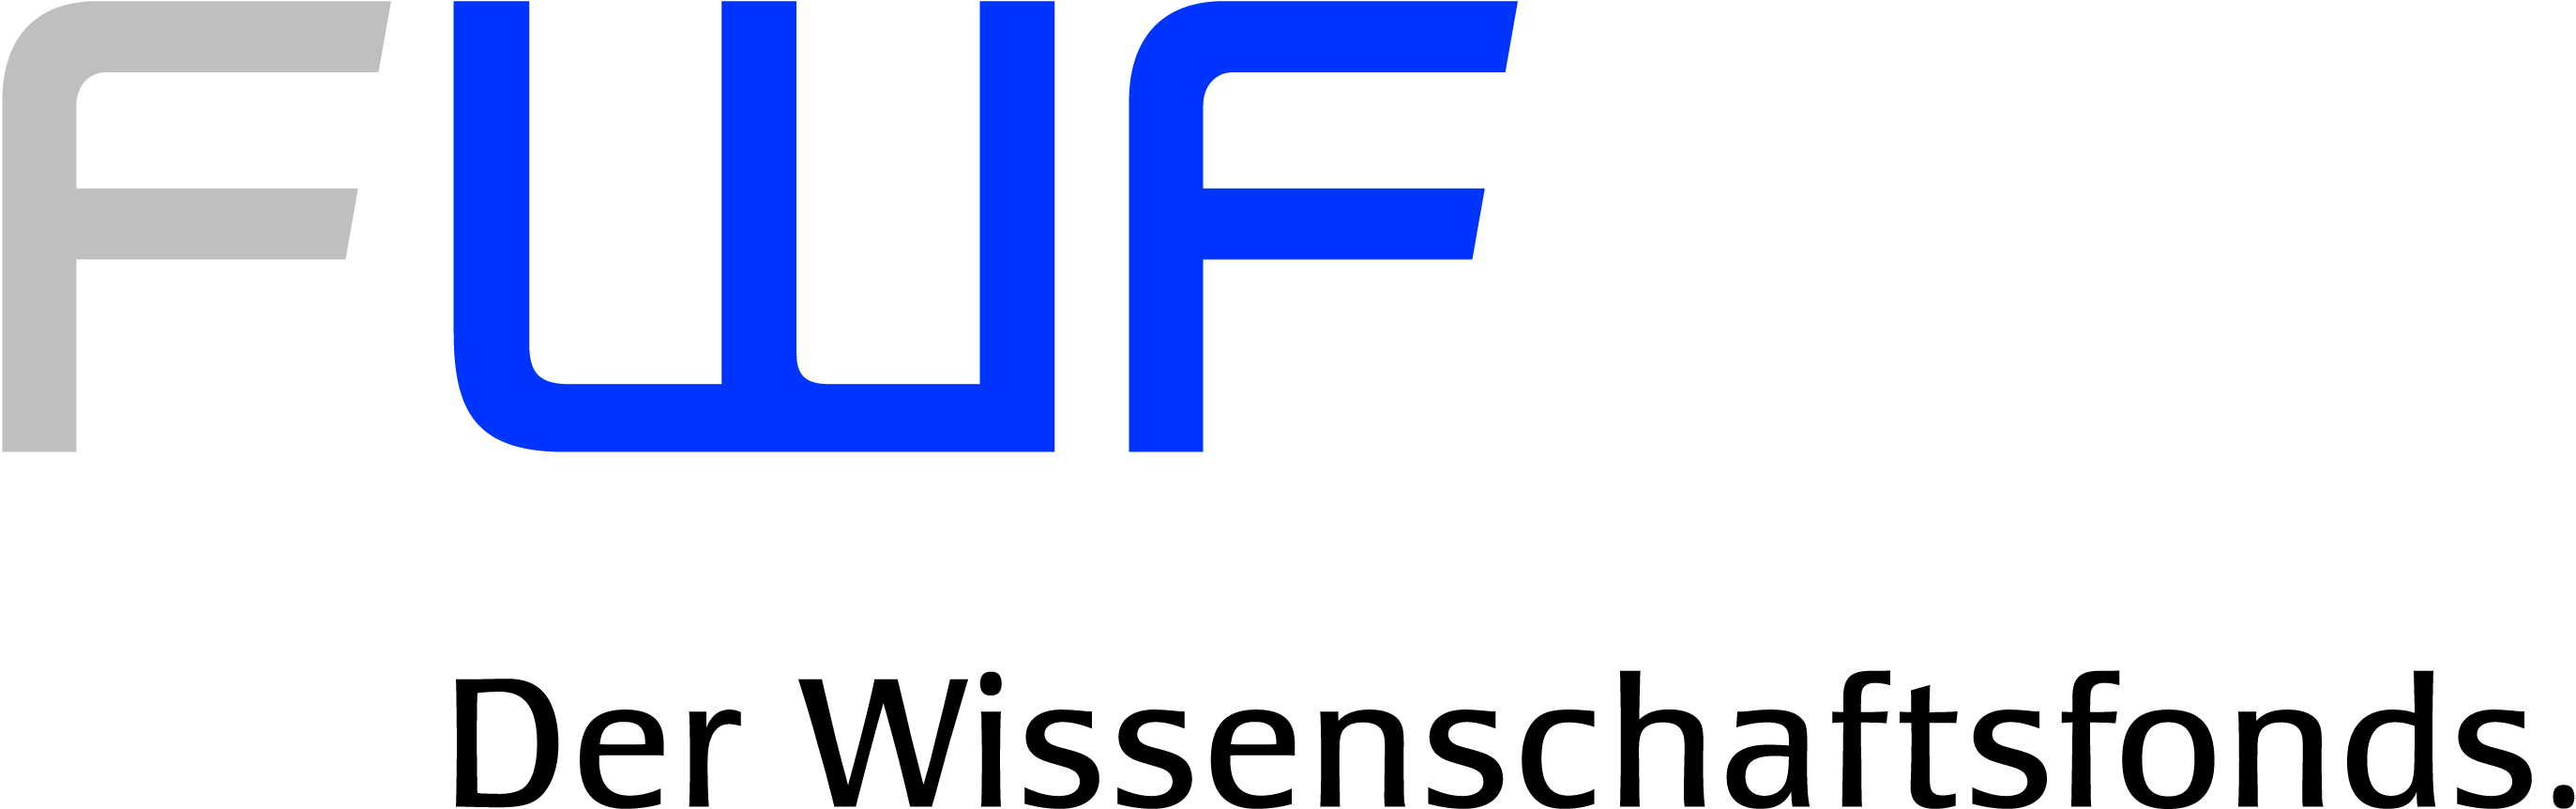 FWF Austrian Science Fund logo